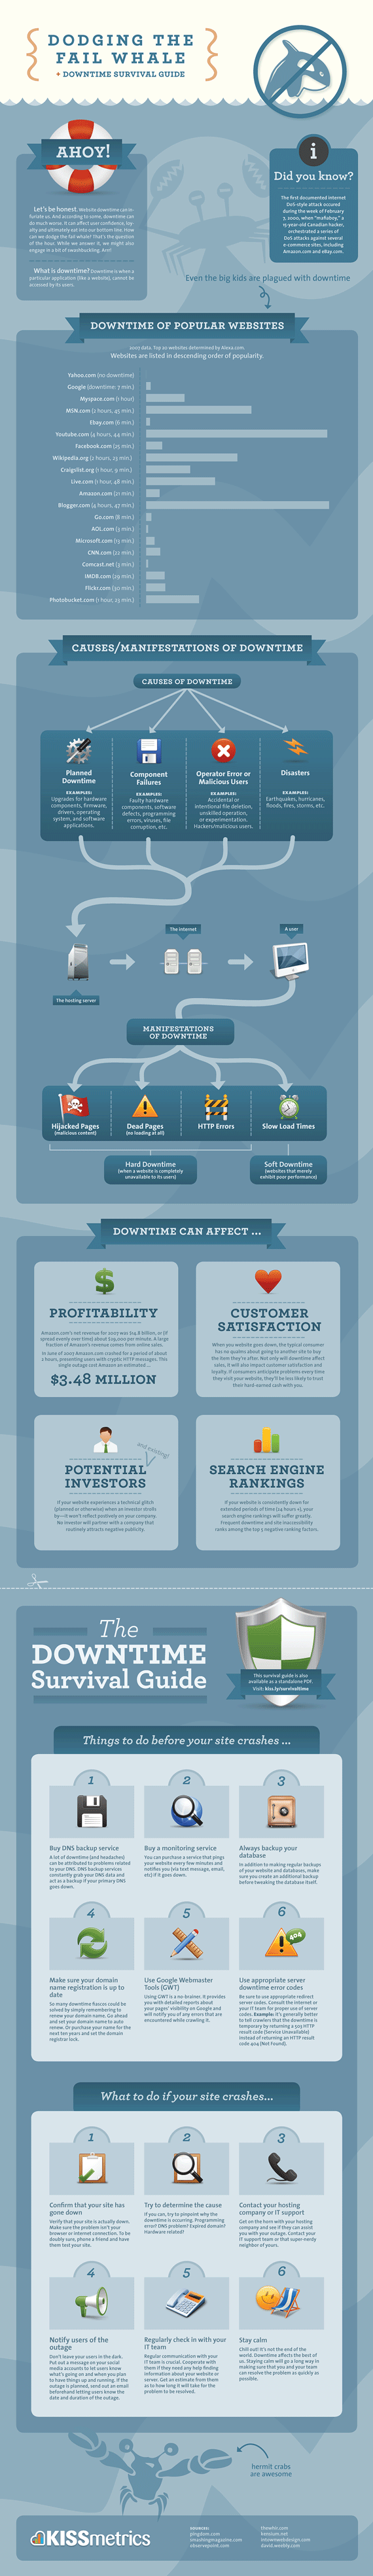 Website Downtime Survival Guide Infographic